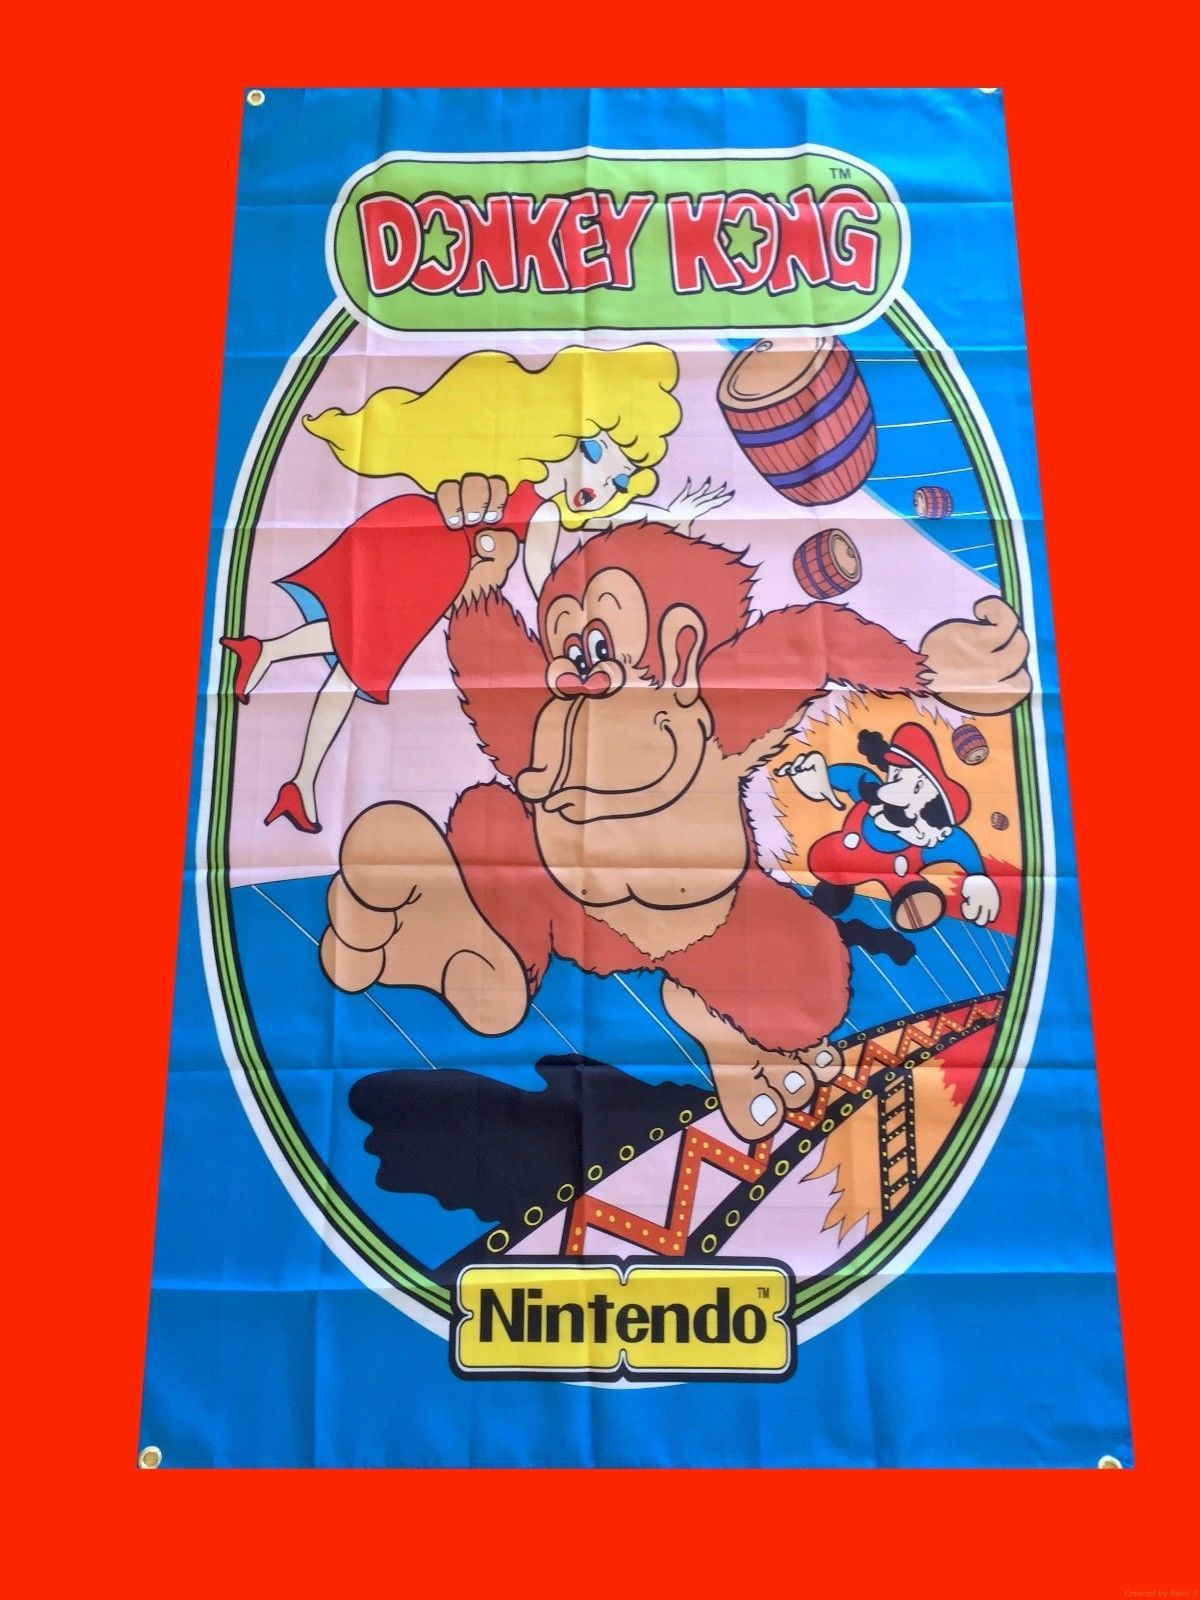 Details about LARGE Donkey Kong Arcade Video Game Banner